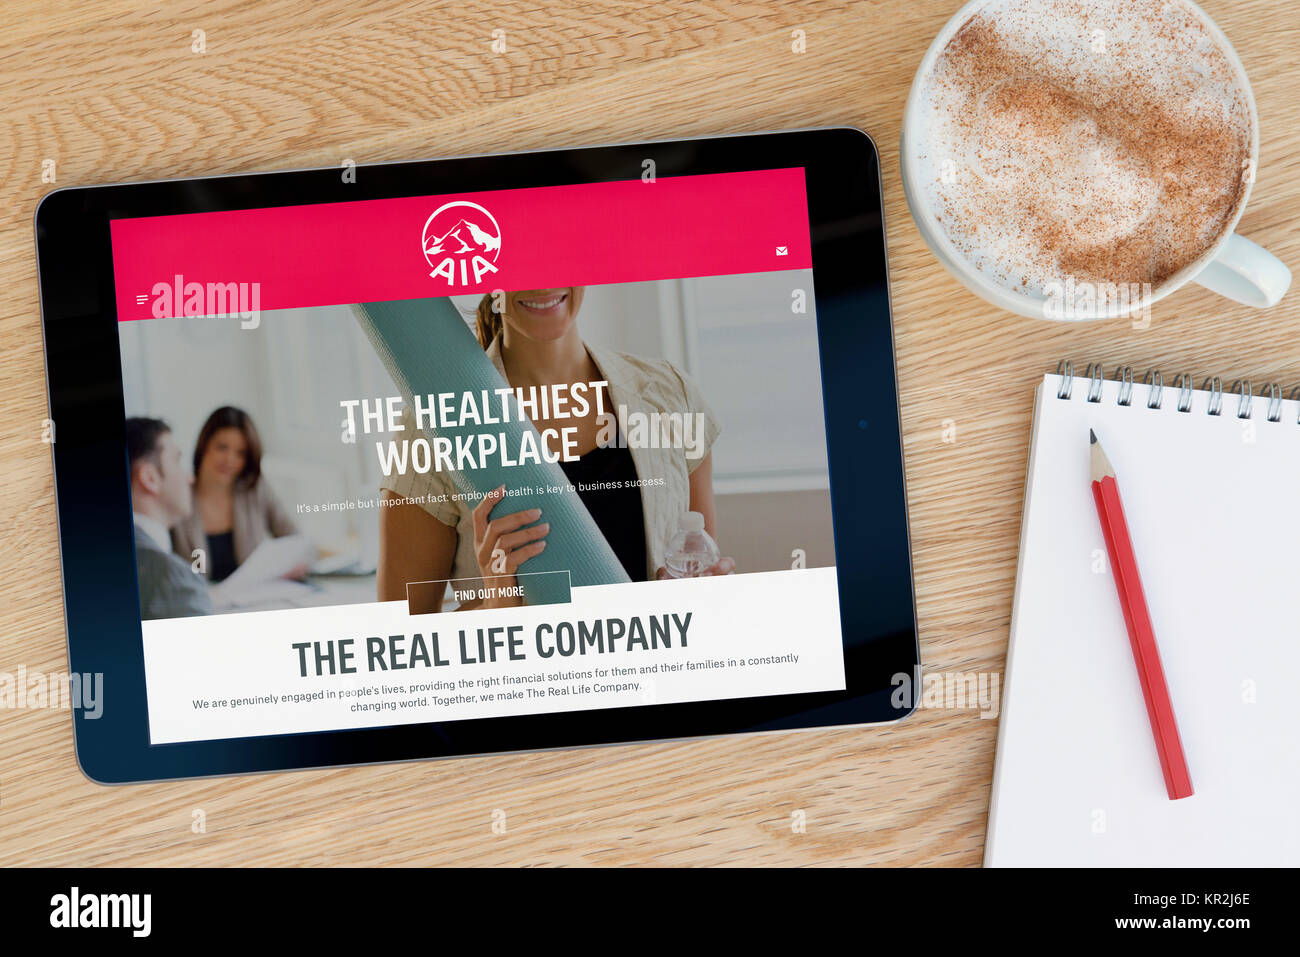 The AIA Group website on an iPad tablet device which rests on a wooden table beside a notepad and pencil and a cup - Stock Image